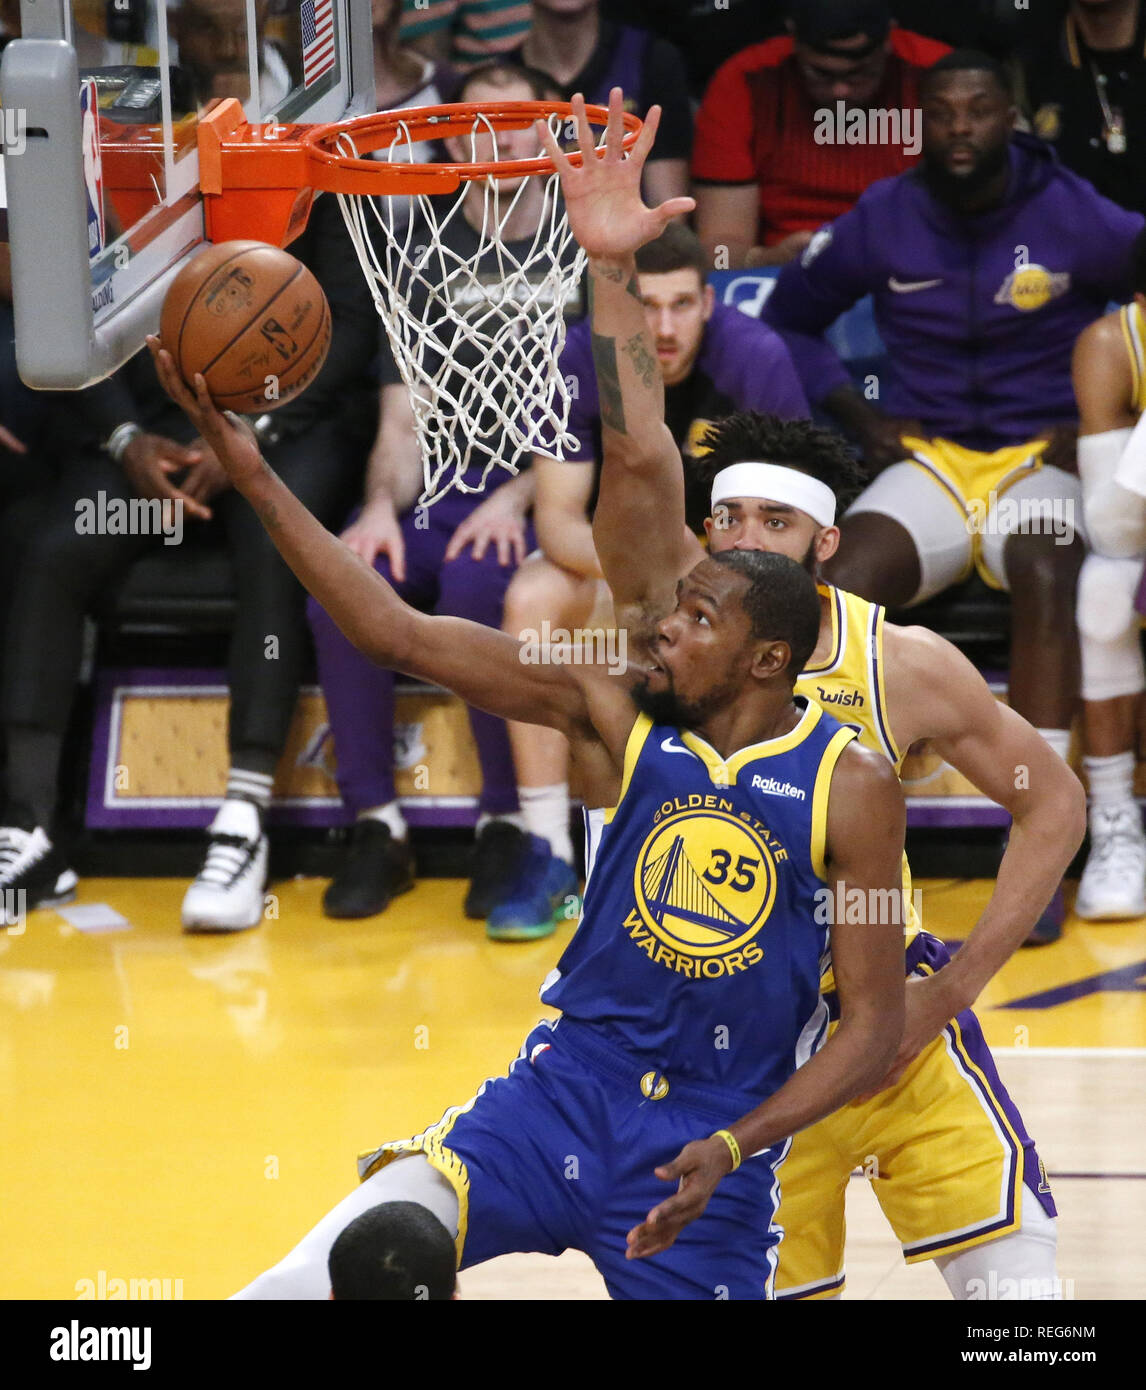 ebfb62c3cbb4 Golden State Warriors  Kevin Durant (35) goes to basket while defended by  Los Angeles Lakers  JaVale McGee (7) during an NBA basketball game between  Los ...